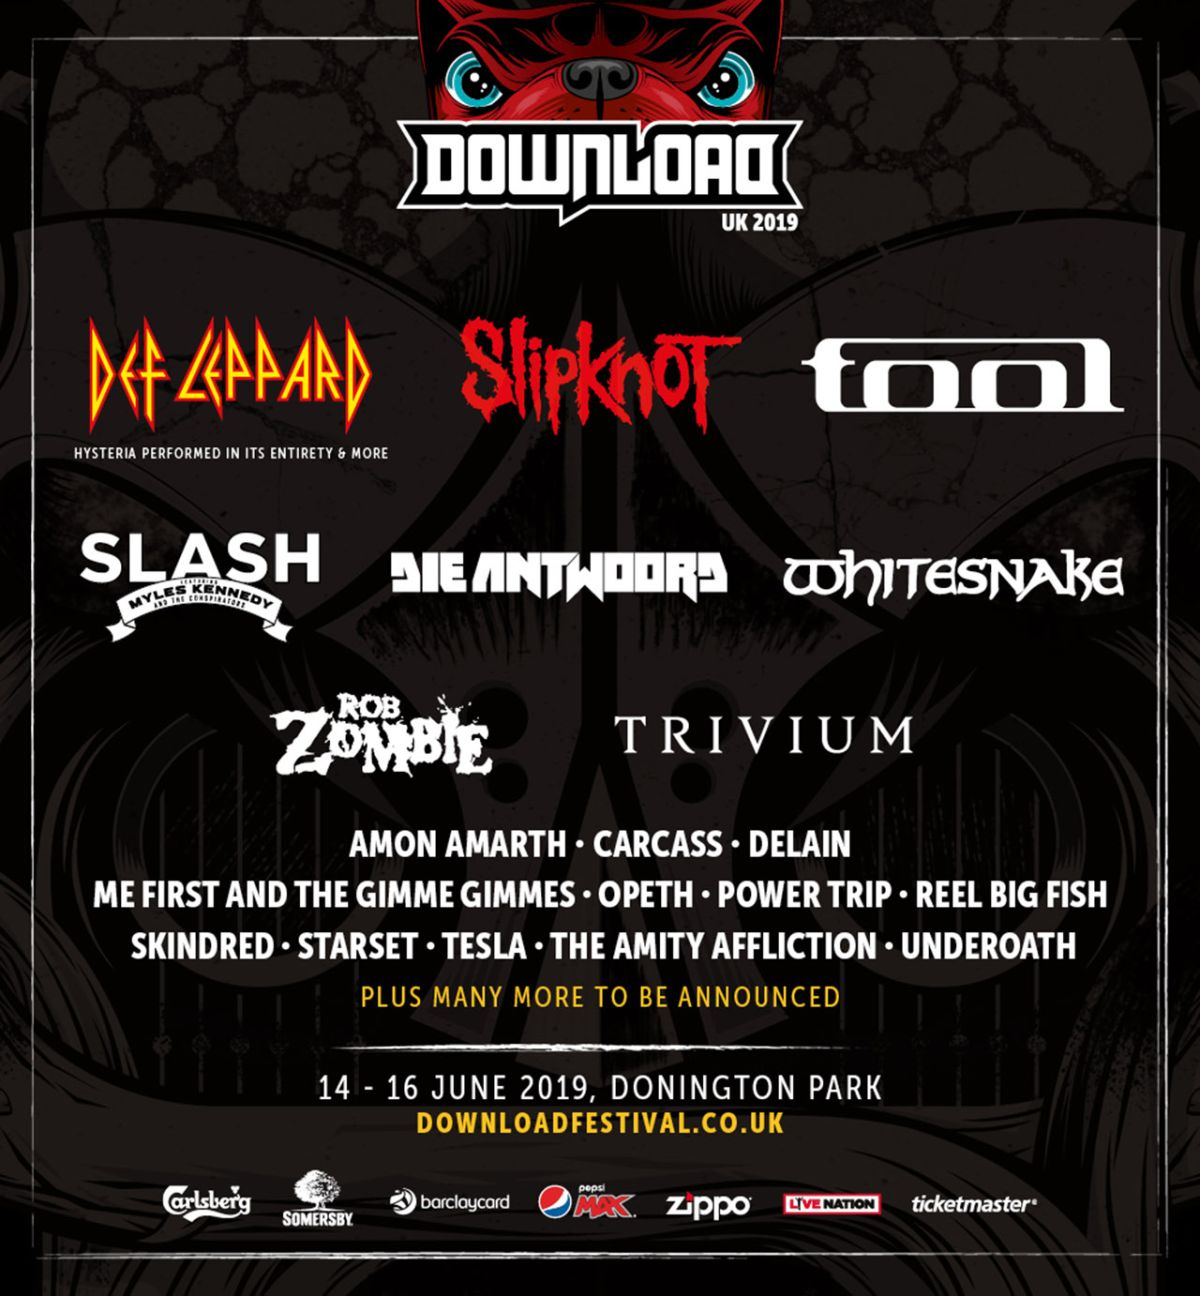 Def Leppard, Slipknot and Tool to headline Download UK 2019